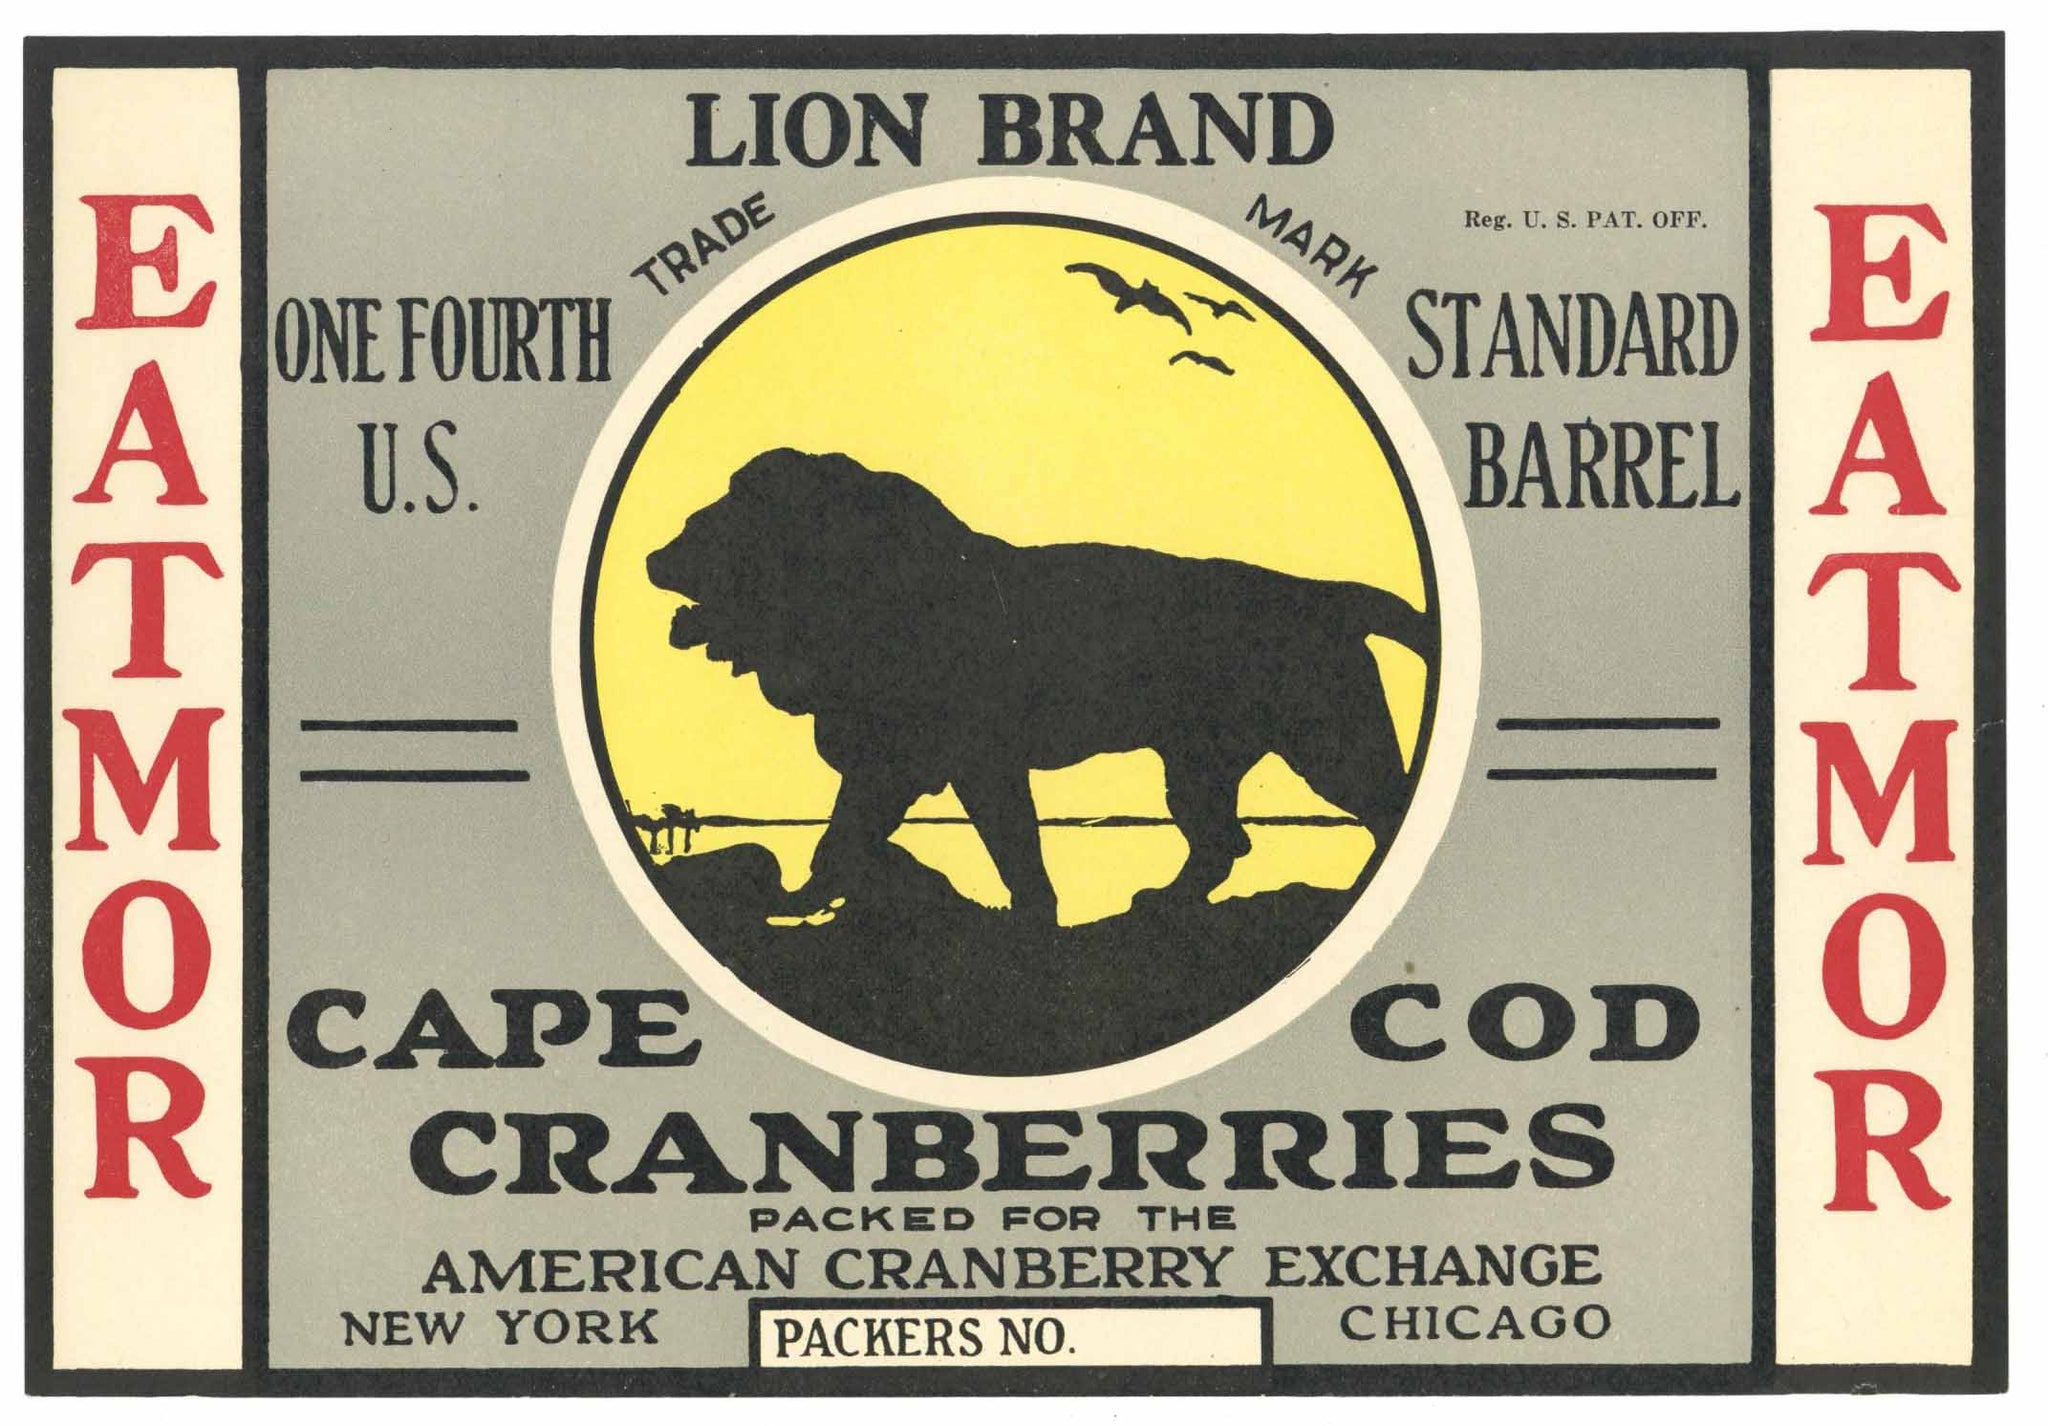 Lion Brand Vintage Cape Cod Cranberry Crate Label, 1/4, yellow